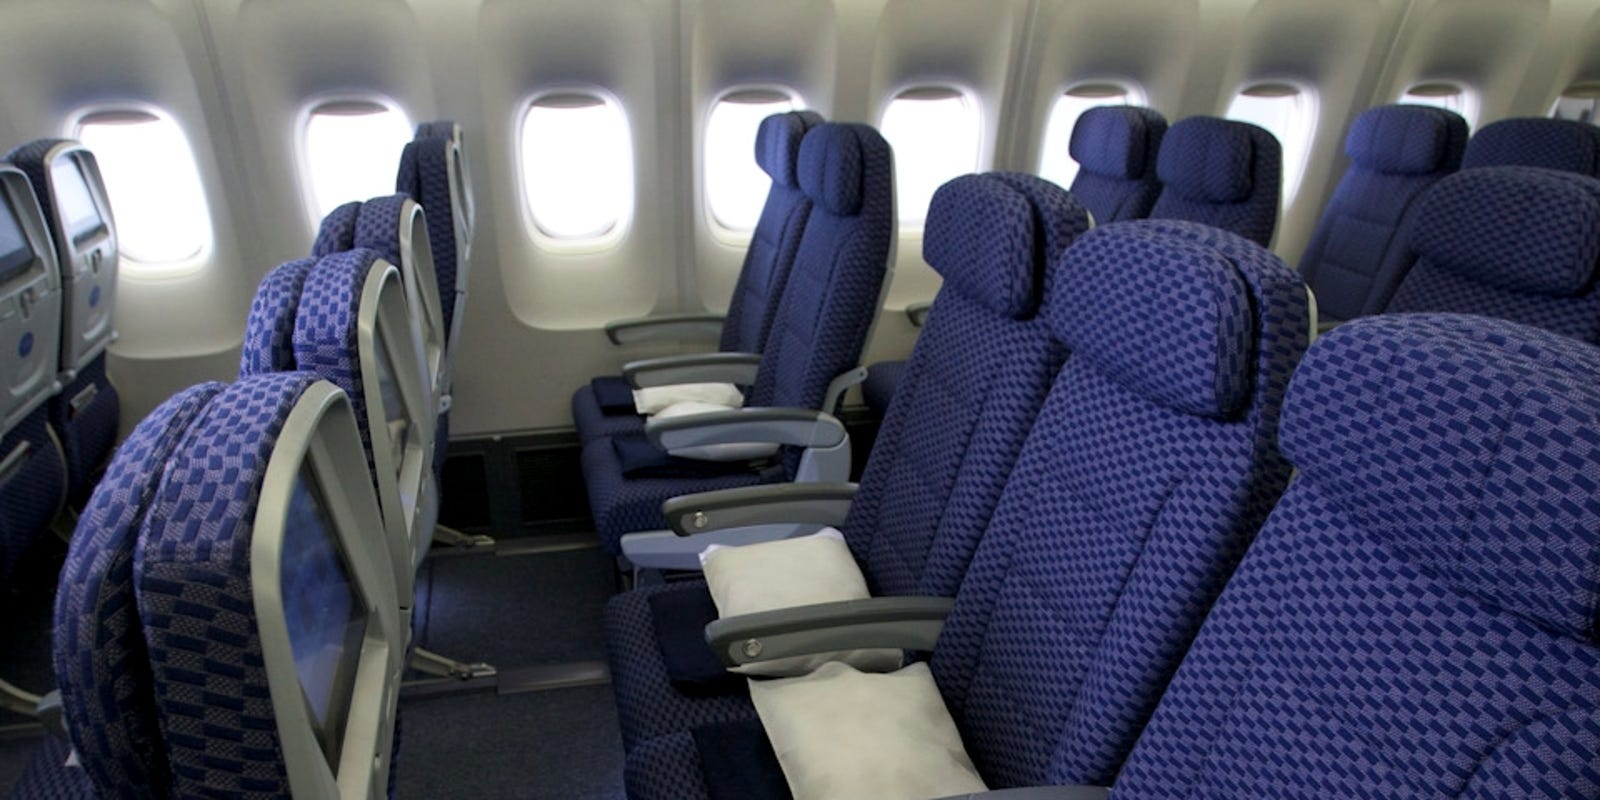 Economy Plus Seats For Travel To India